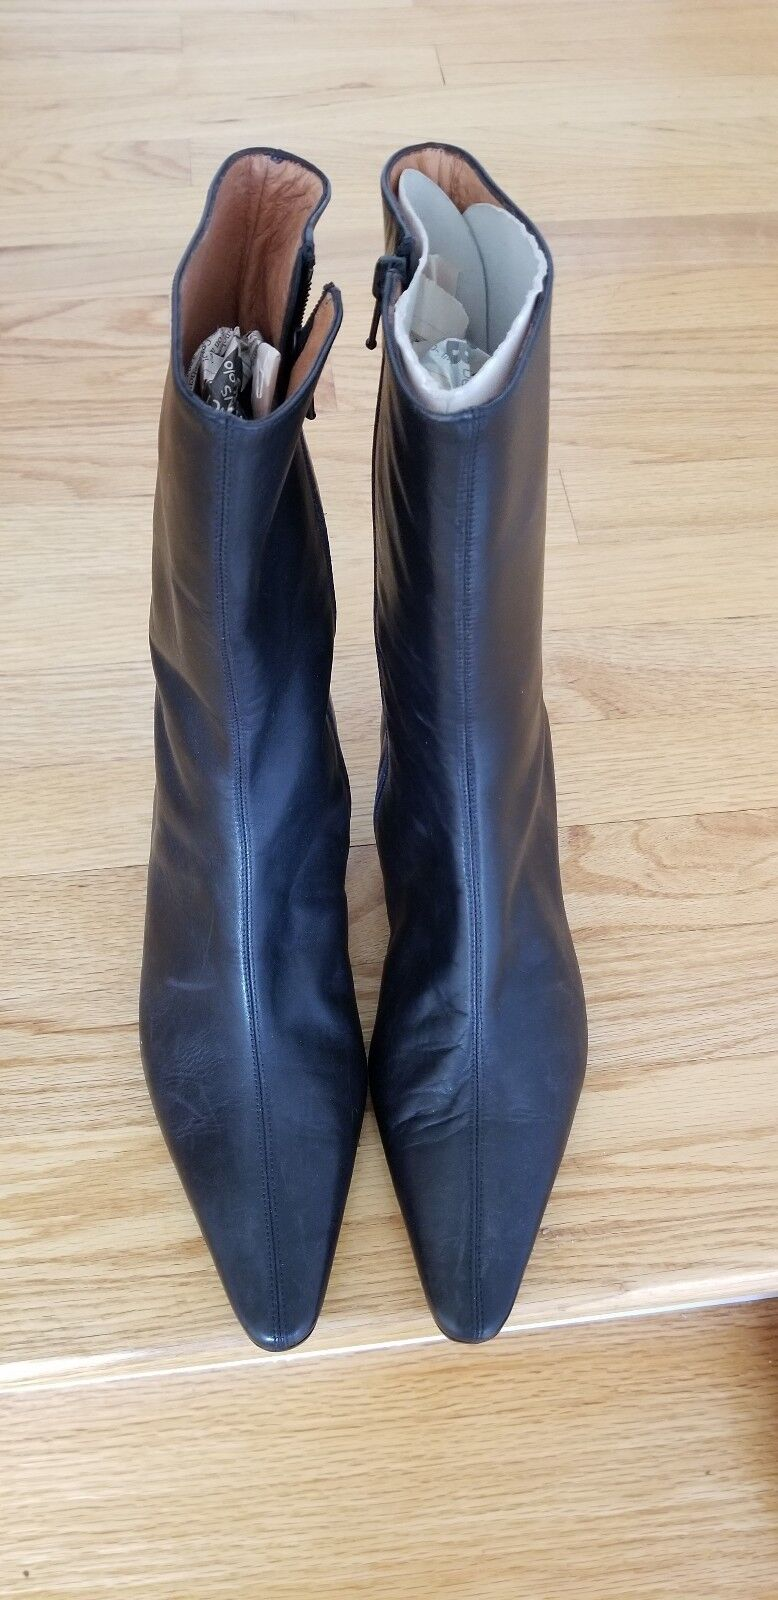 J CREW DELANEY LEATHER KITTEN  ankle boots size 8 new without box